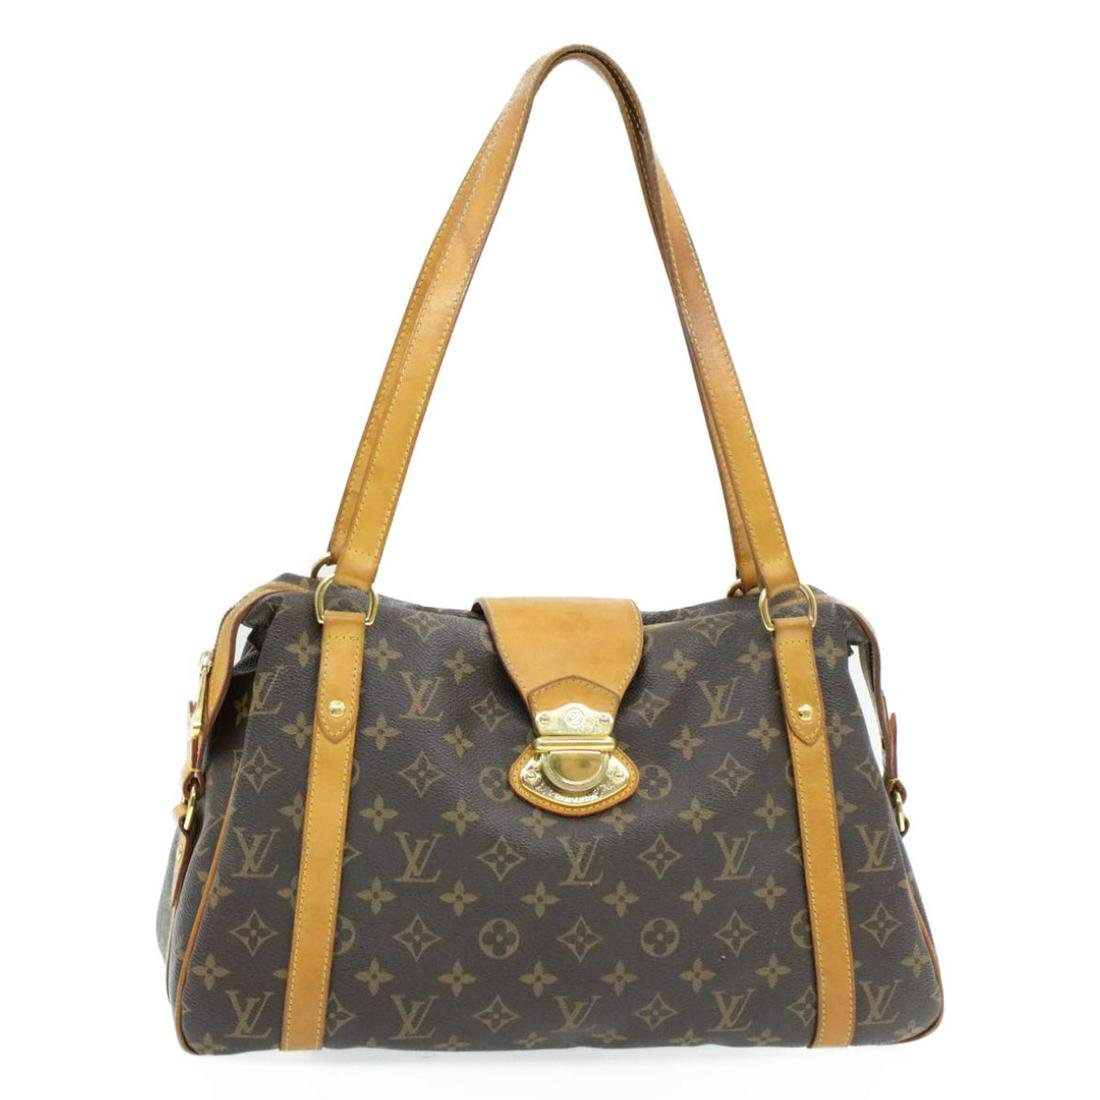 Authentic LOUIS VUITTON Monogram Canvas Hand Bag